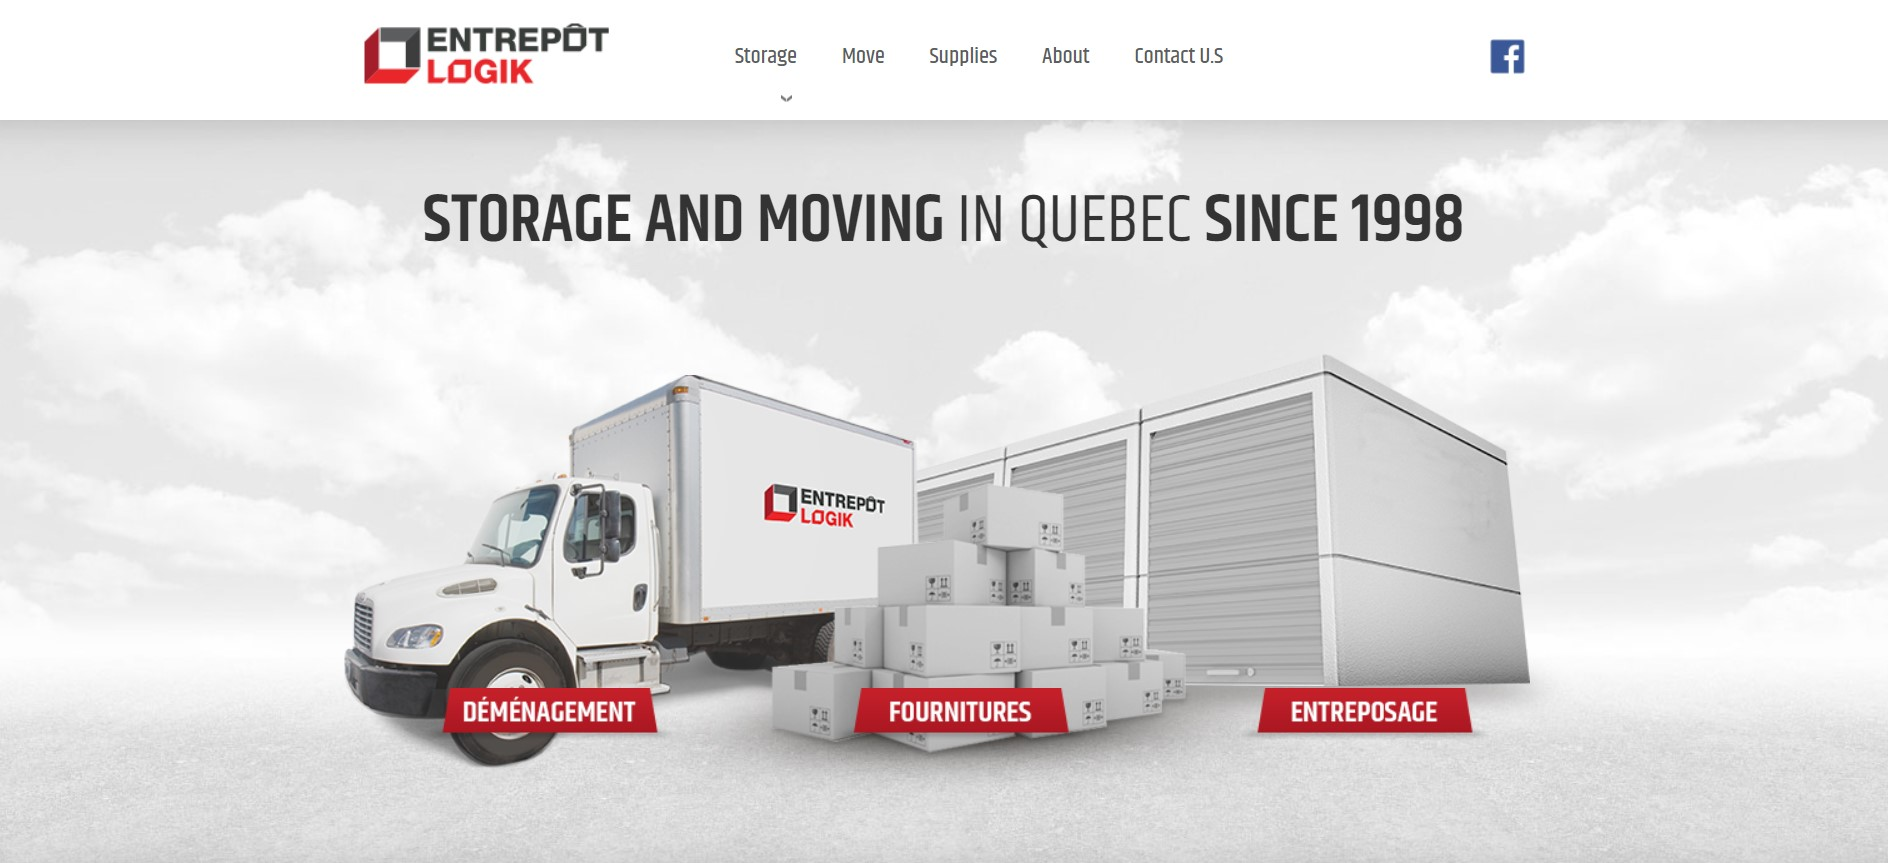 entrepot logik self storage facility in quebec